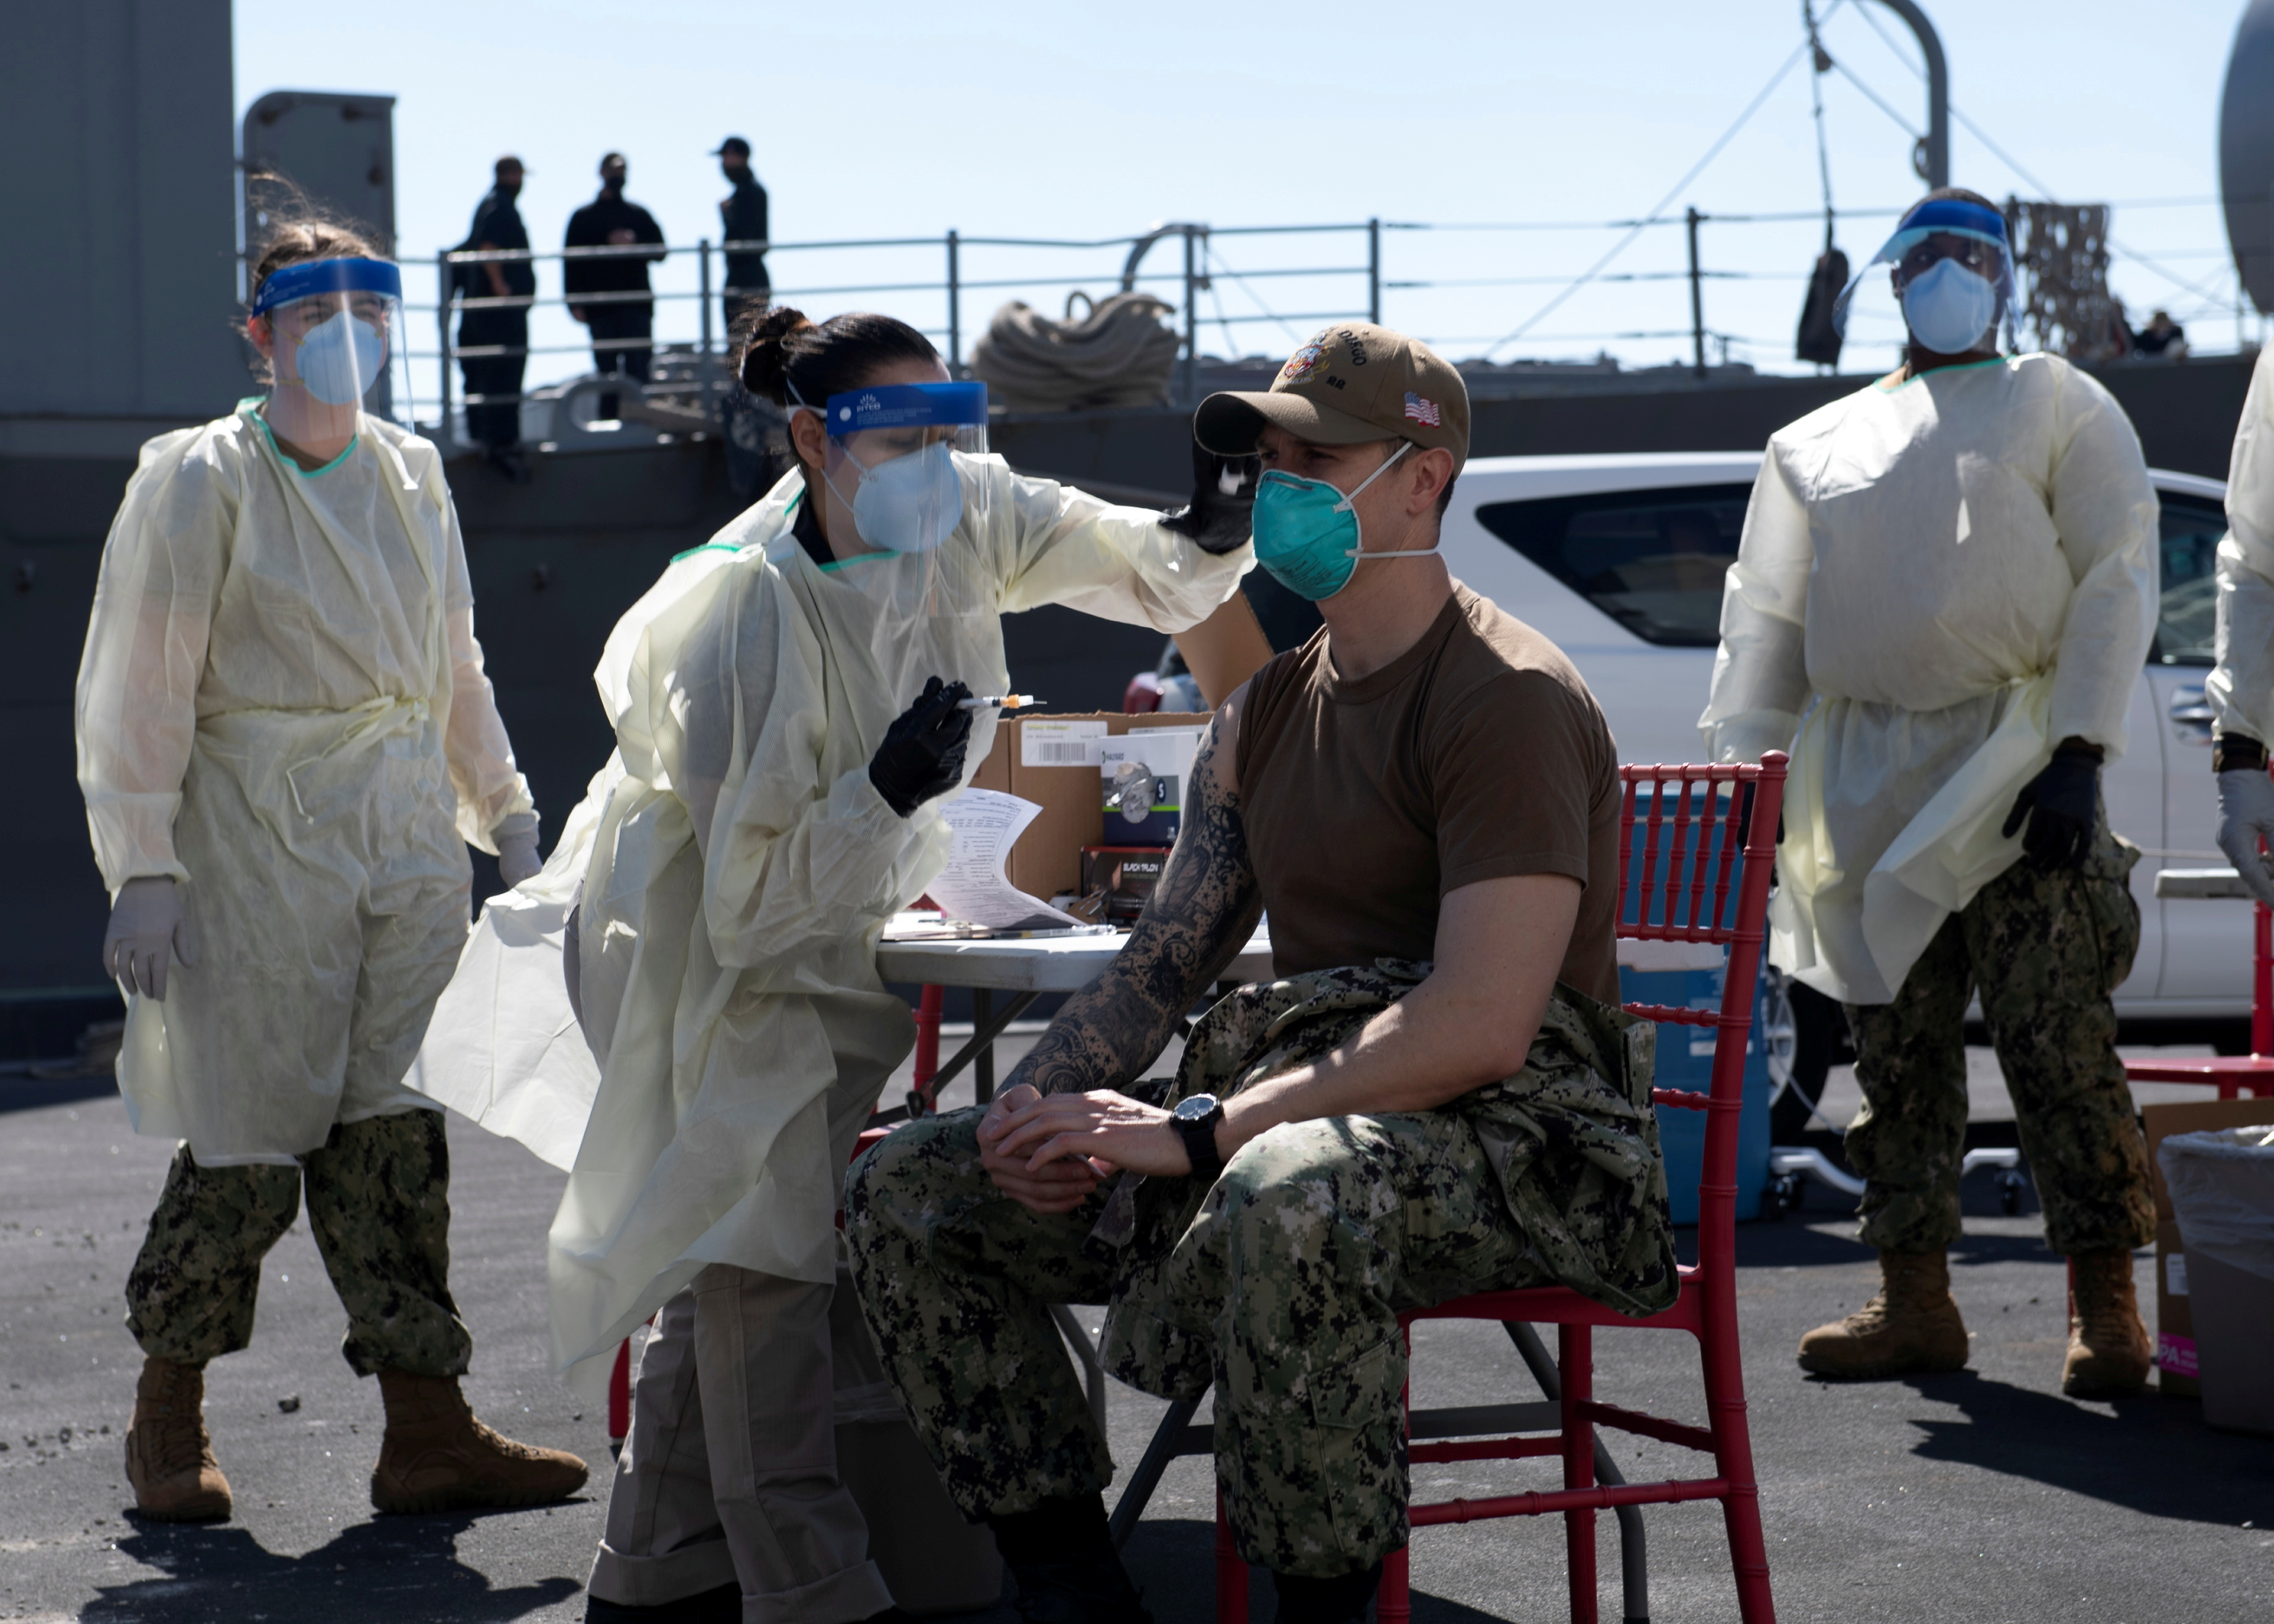 A United States Navy officer from the amphibious ship USS San Diego (LPD 22) receives a vaccine against Coronavirus (COVID-19) at the navy port in Manama, Bahrain in this picture taken February 26, 2021 and released by U.S Navy on February 27, 2021. Brandon Woods/U.S. Navy/Handout via REUTERS/File Photo